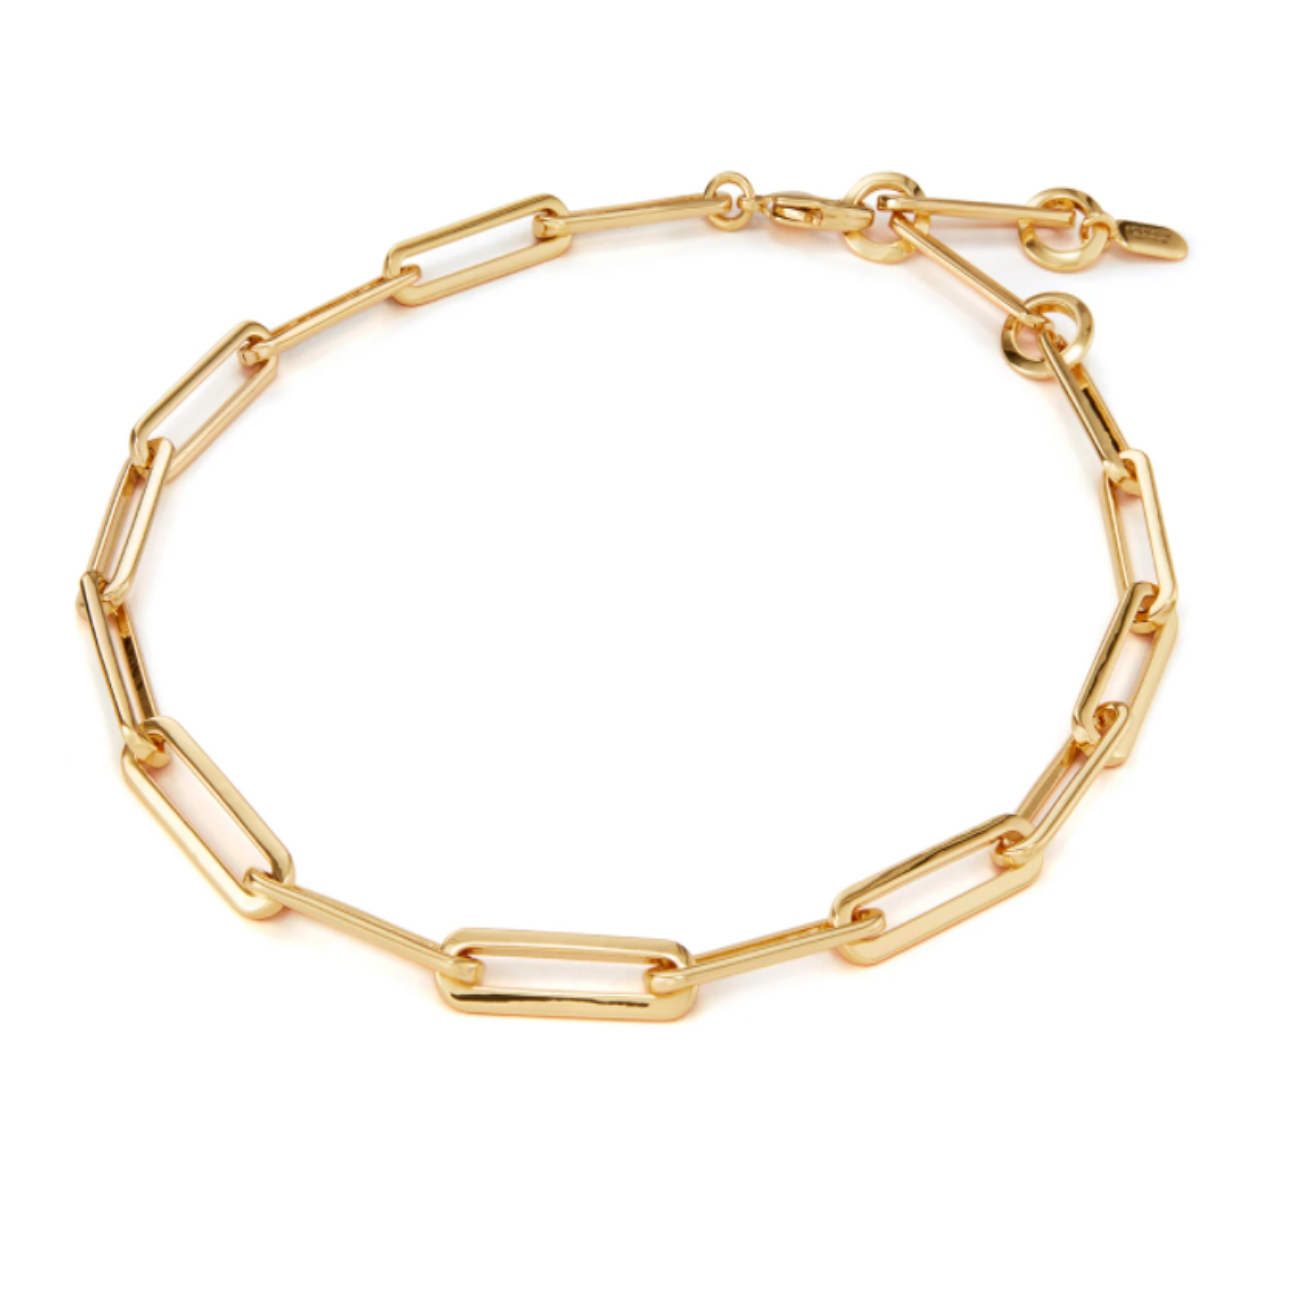 JENNY BIRD - STEVIE CHAIN NECKLACE IN GOLD